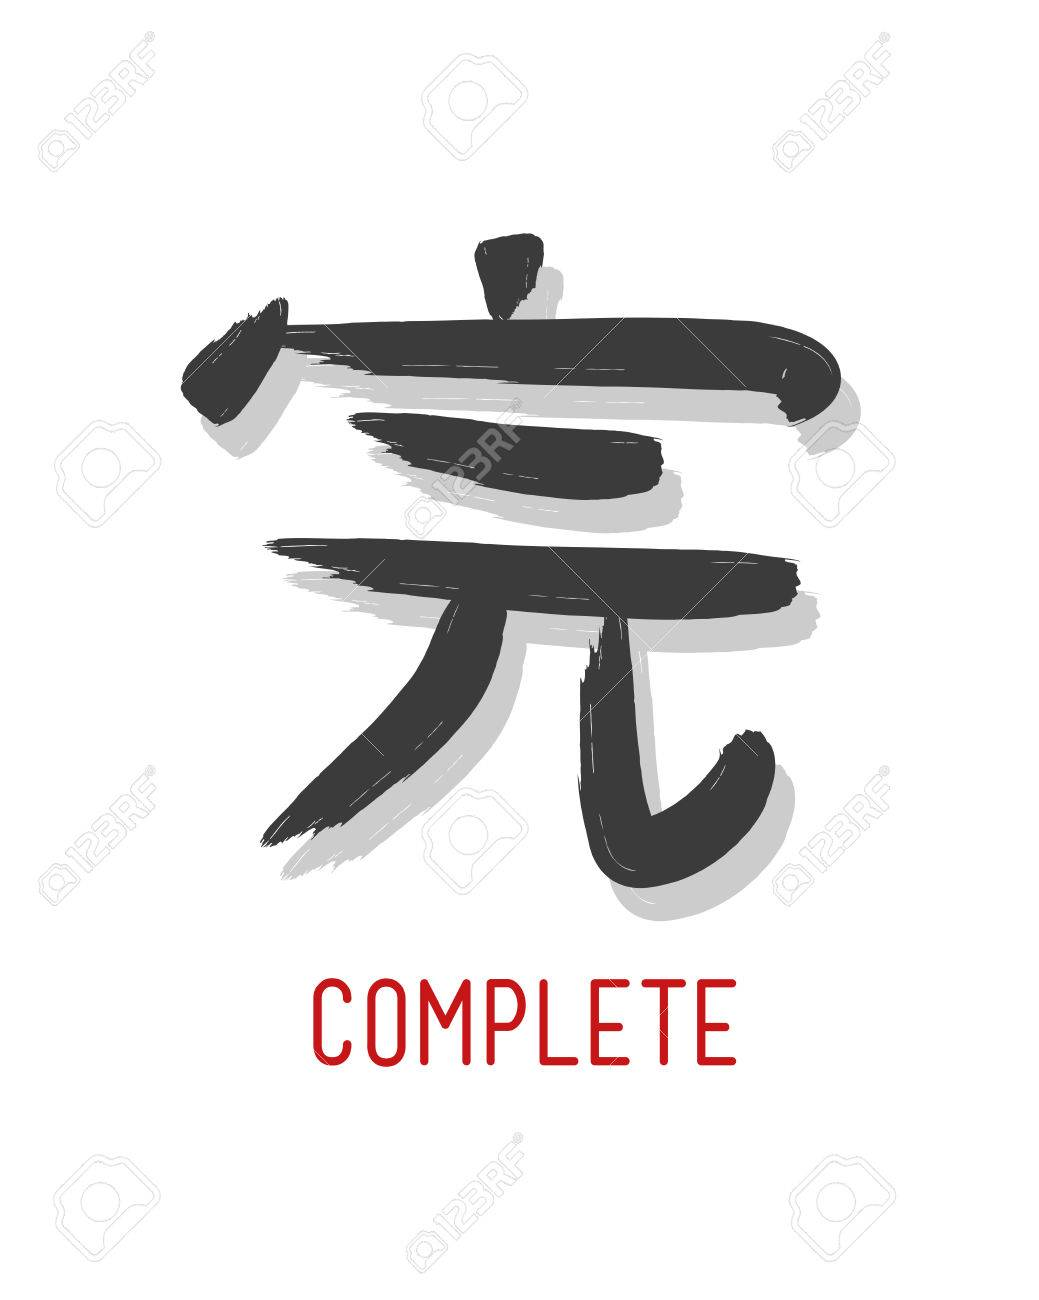 Hand Drawn Vector Illustration Of The Japanese Symbol For Complete